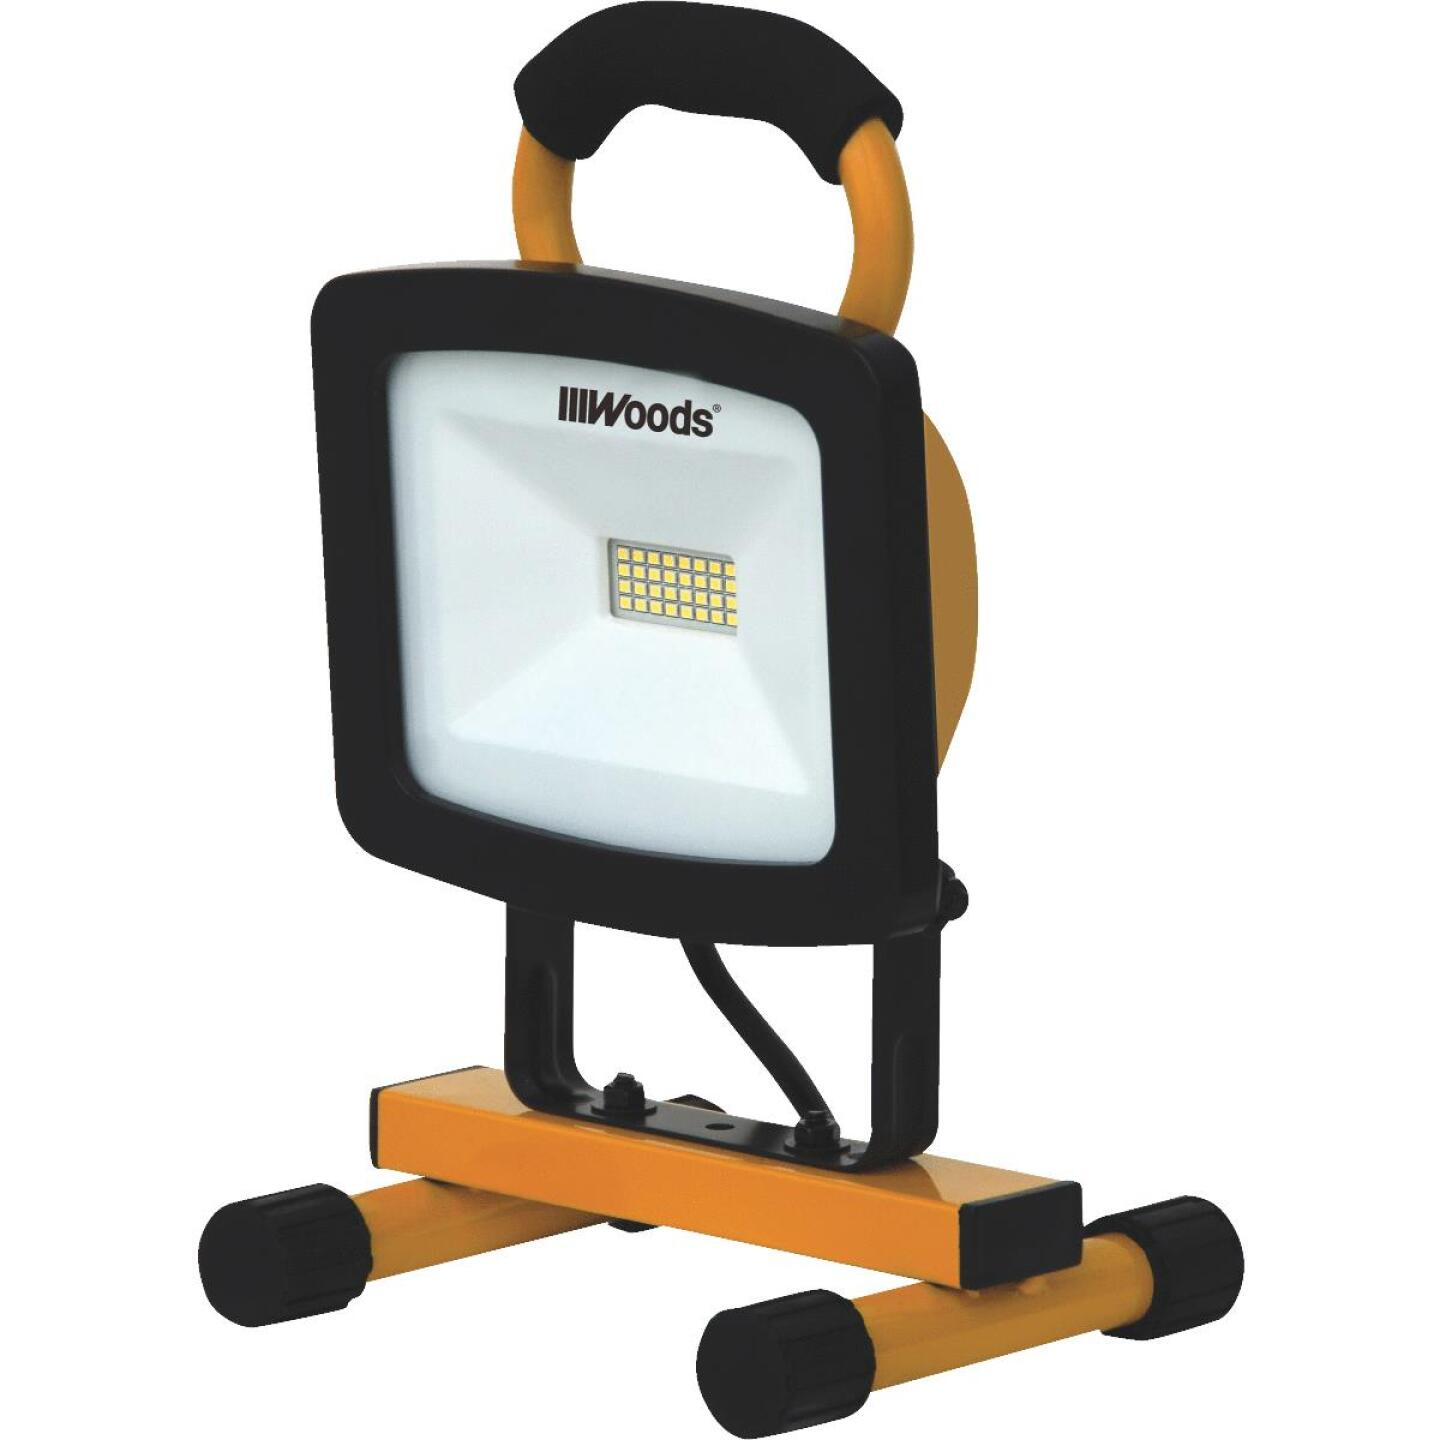 Woods 1500 Lm. LED H-Stand Portable Work Light Image 1